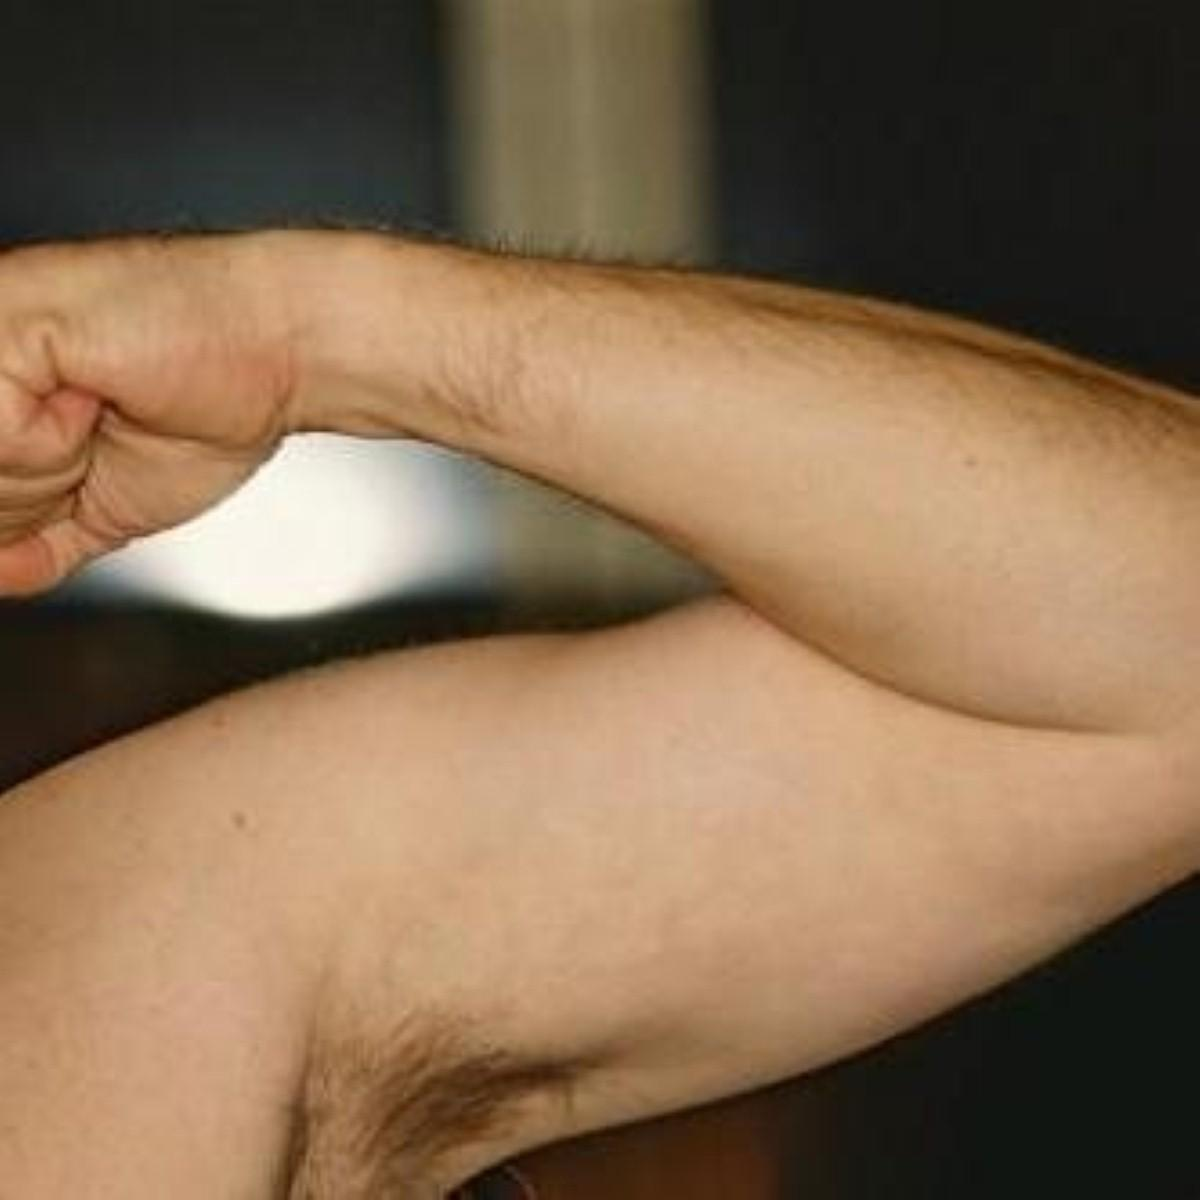 Fat molecule 'could play a leading role in muscle deterioration in older adults'